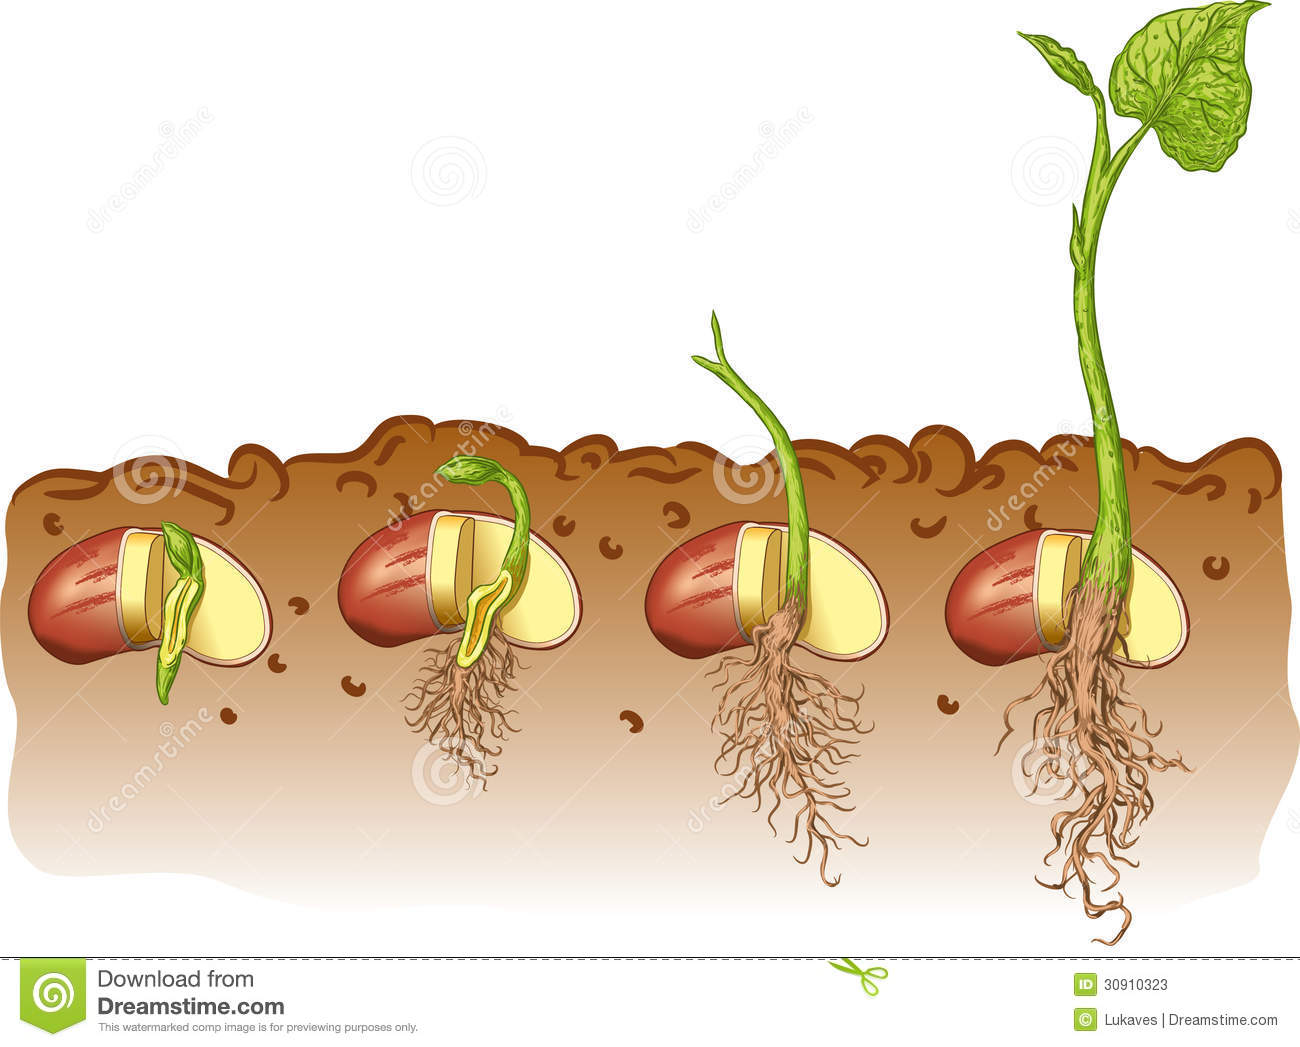 Vector Illustration Growth Of Bean Plants